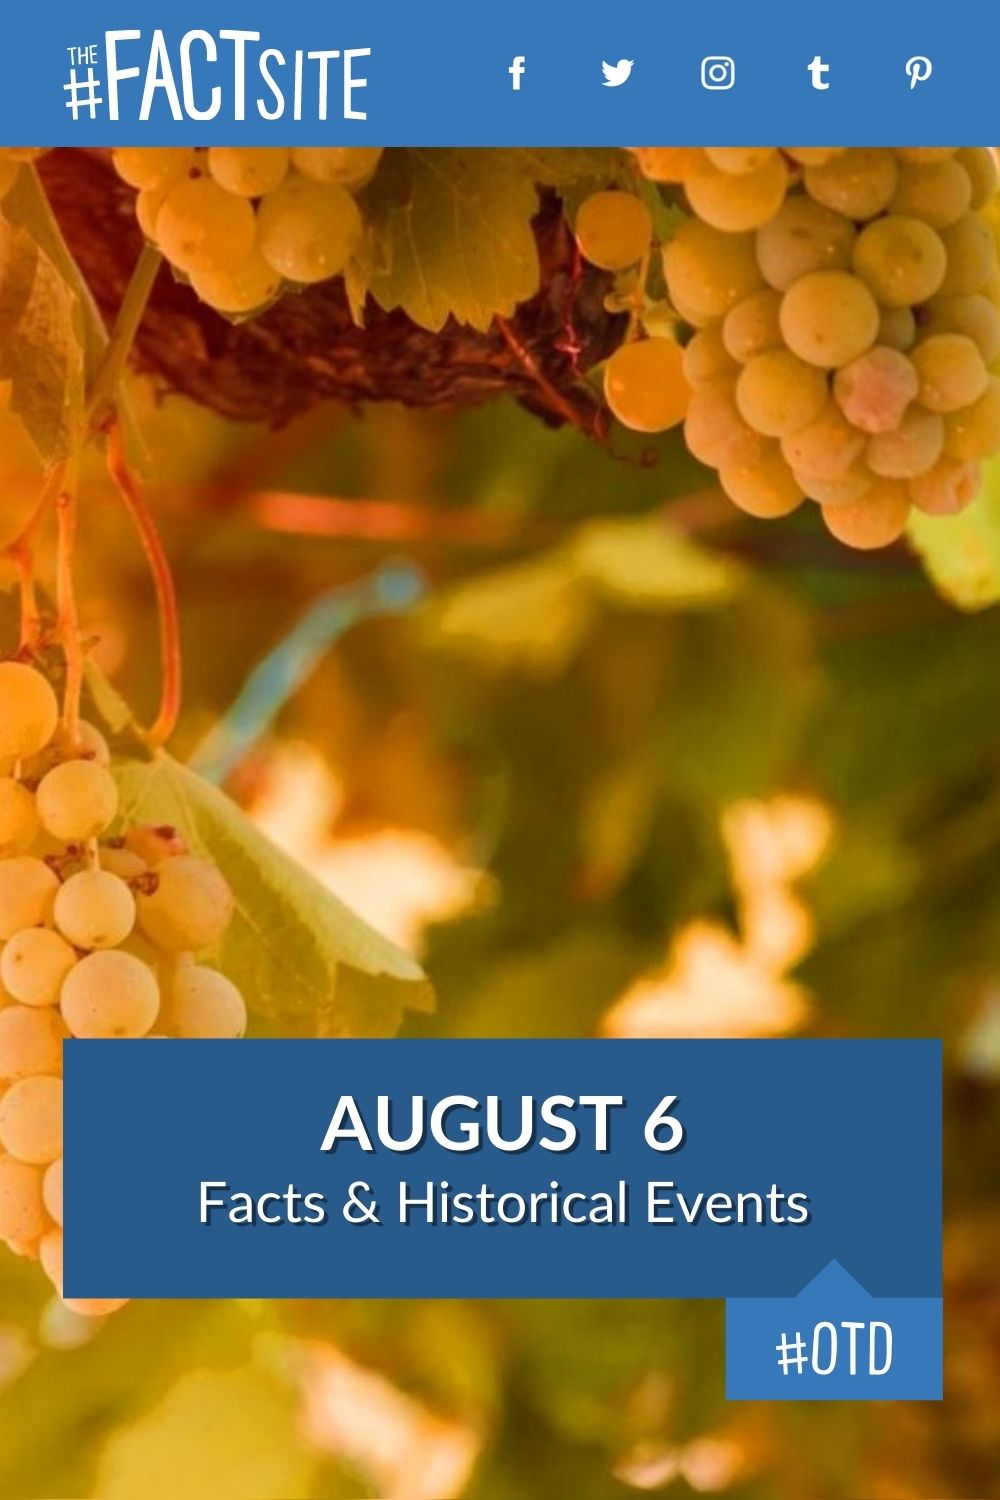 Facts & Historic Events That Happened on August 6